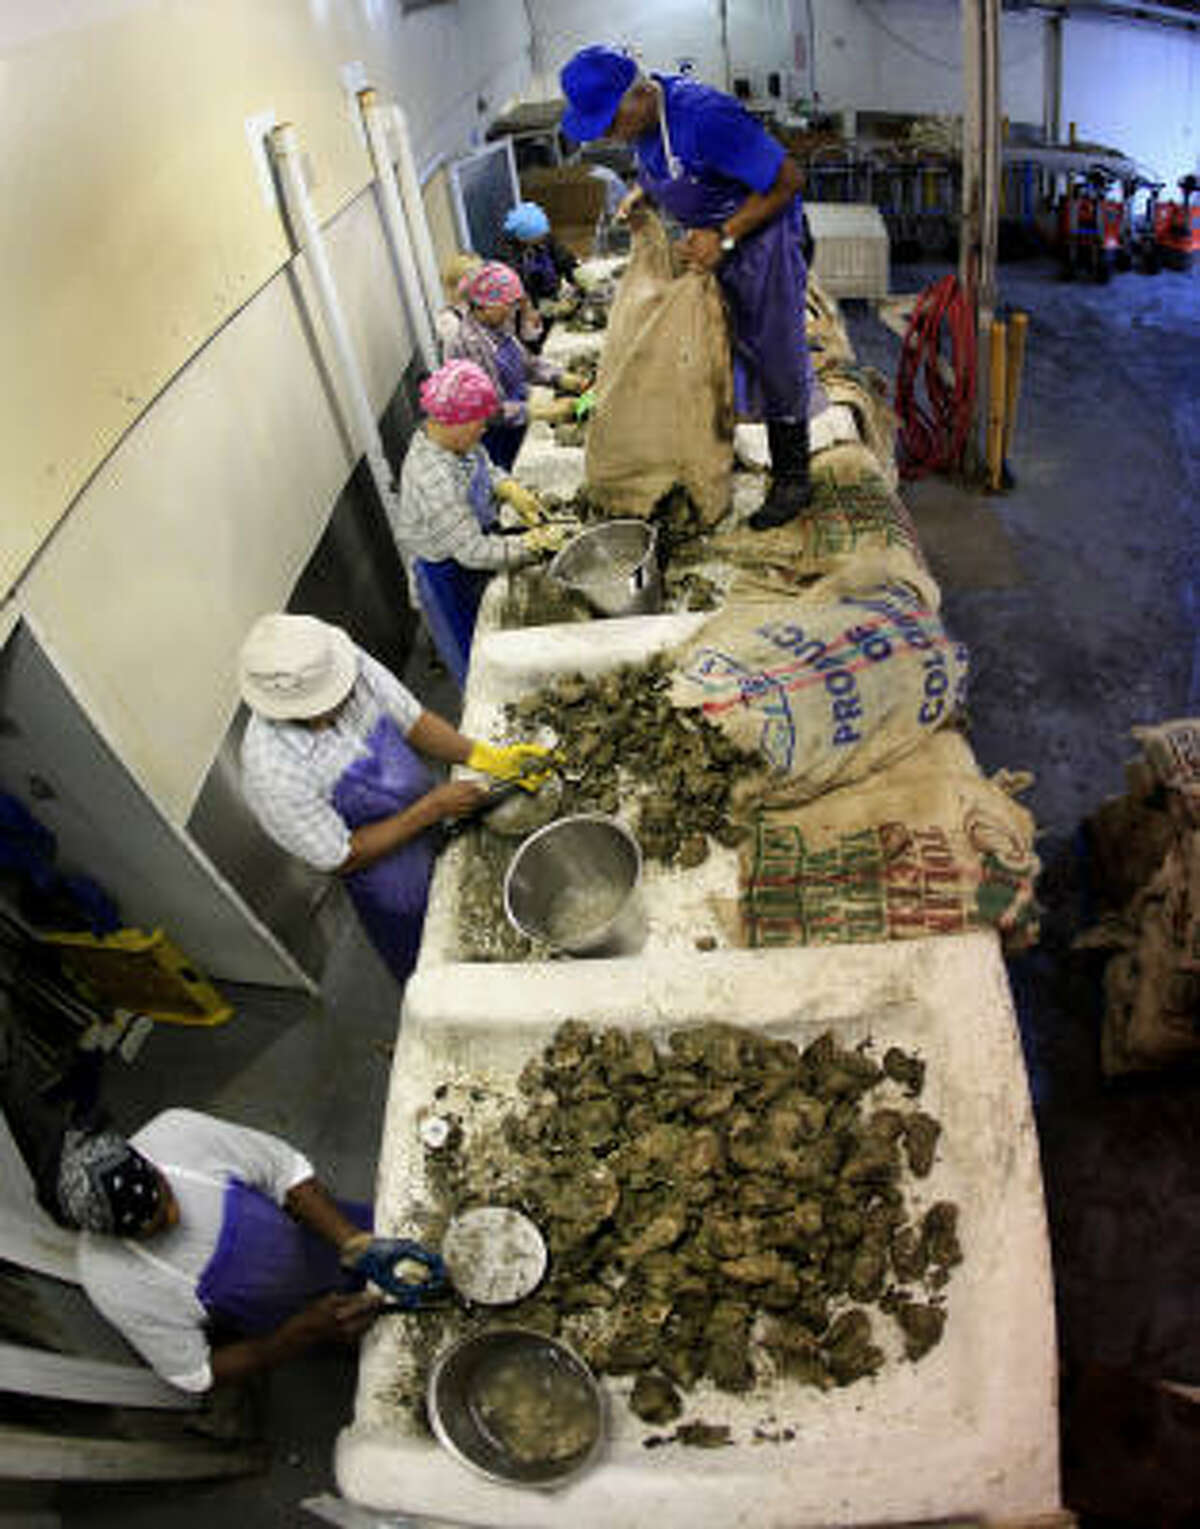 Workers shuck oysters at P&J Oyster Co., in New Orleans Thursday, June 10, 2010. Work is coming to a halt at the 134-year-old establishment after oyster beds were closed because of the Deepwater Horizon oil spill.